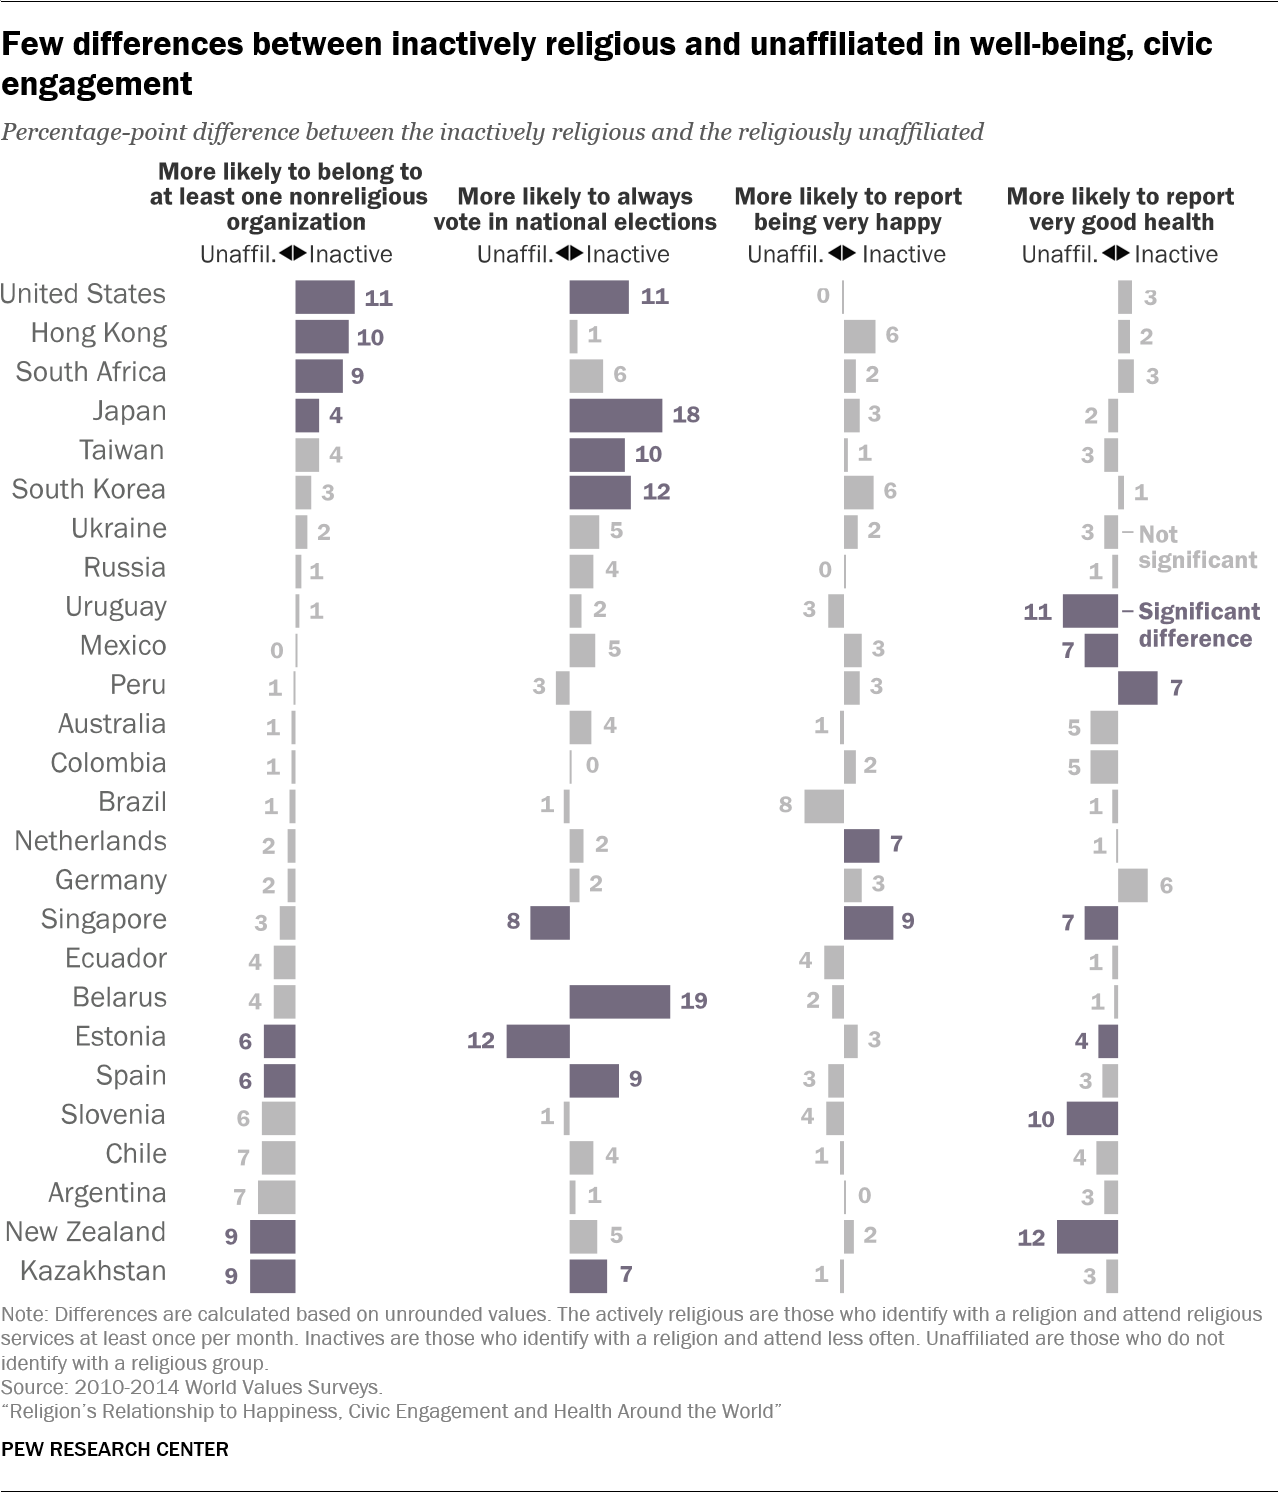 Few differences between inactively religious and unaffiliated in well-being, civic engagement